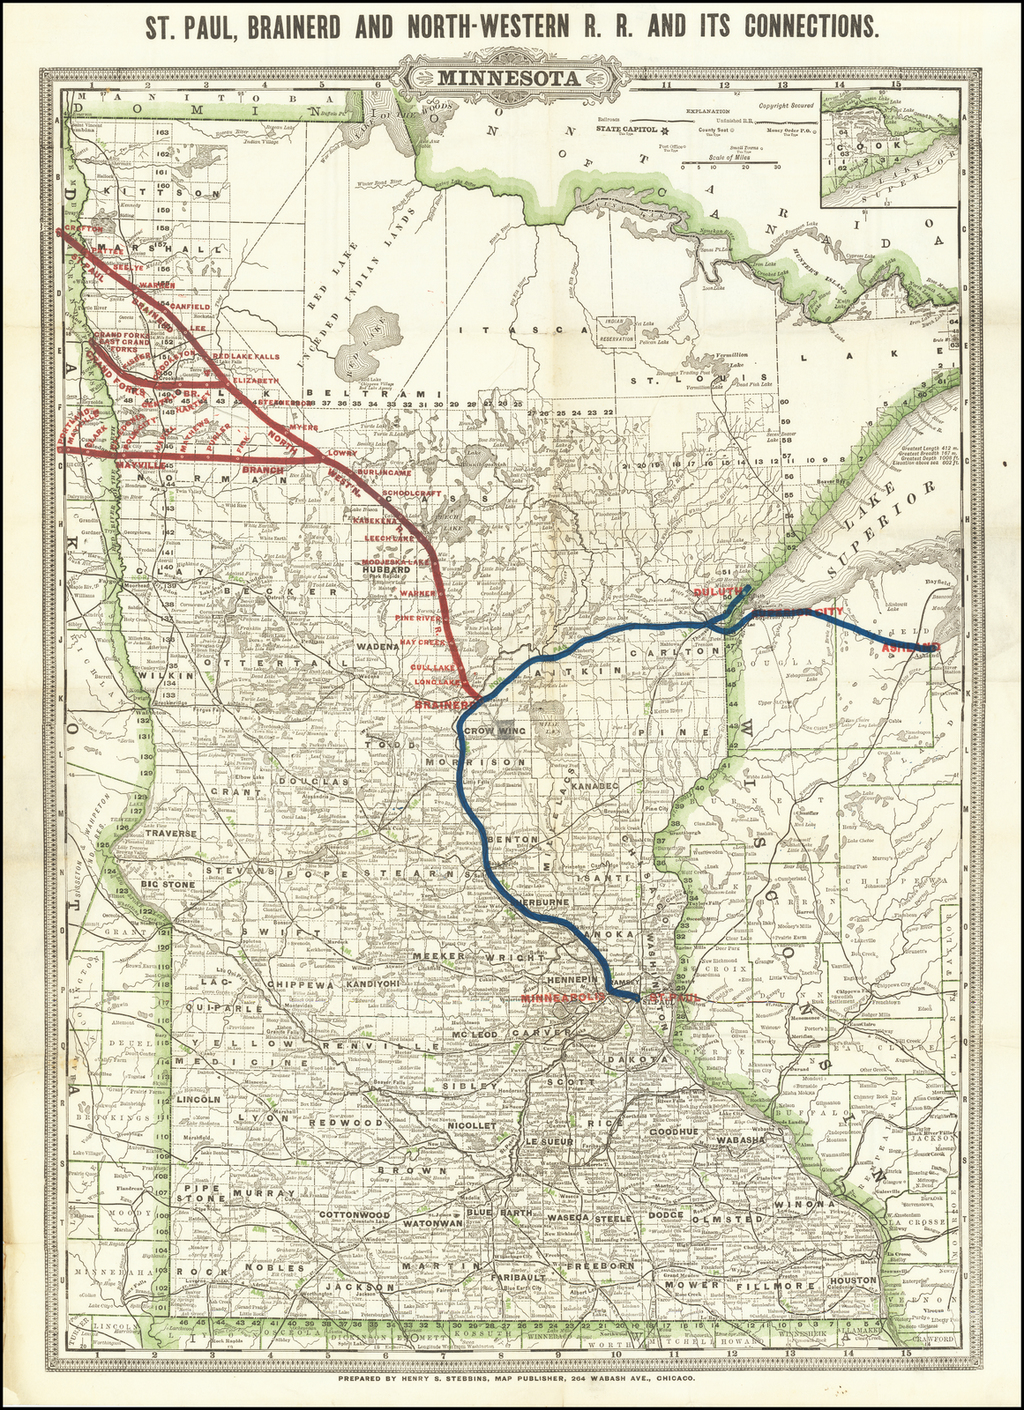 St. Paul, Brainerd and North-Western R.R. and its Connections By George F. Cram / Henry S. Stebbins